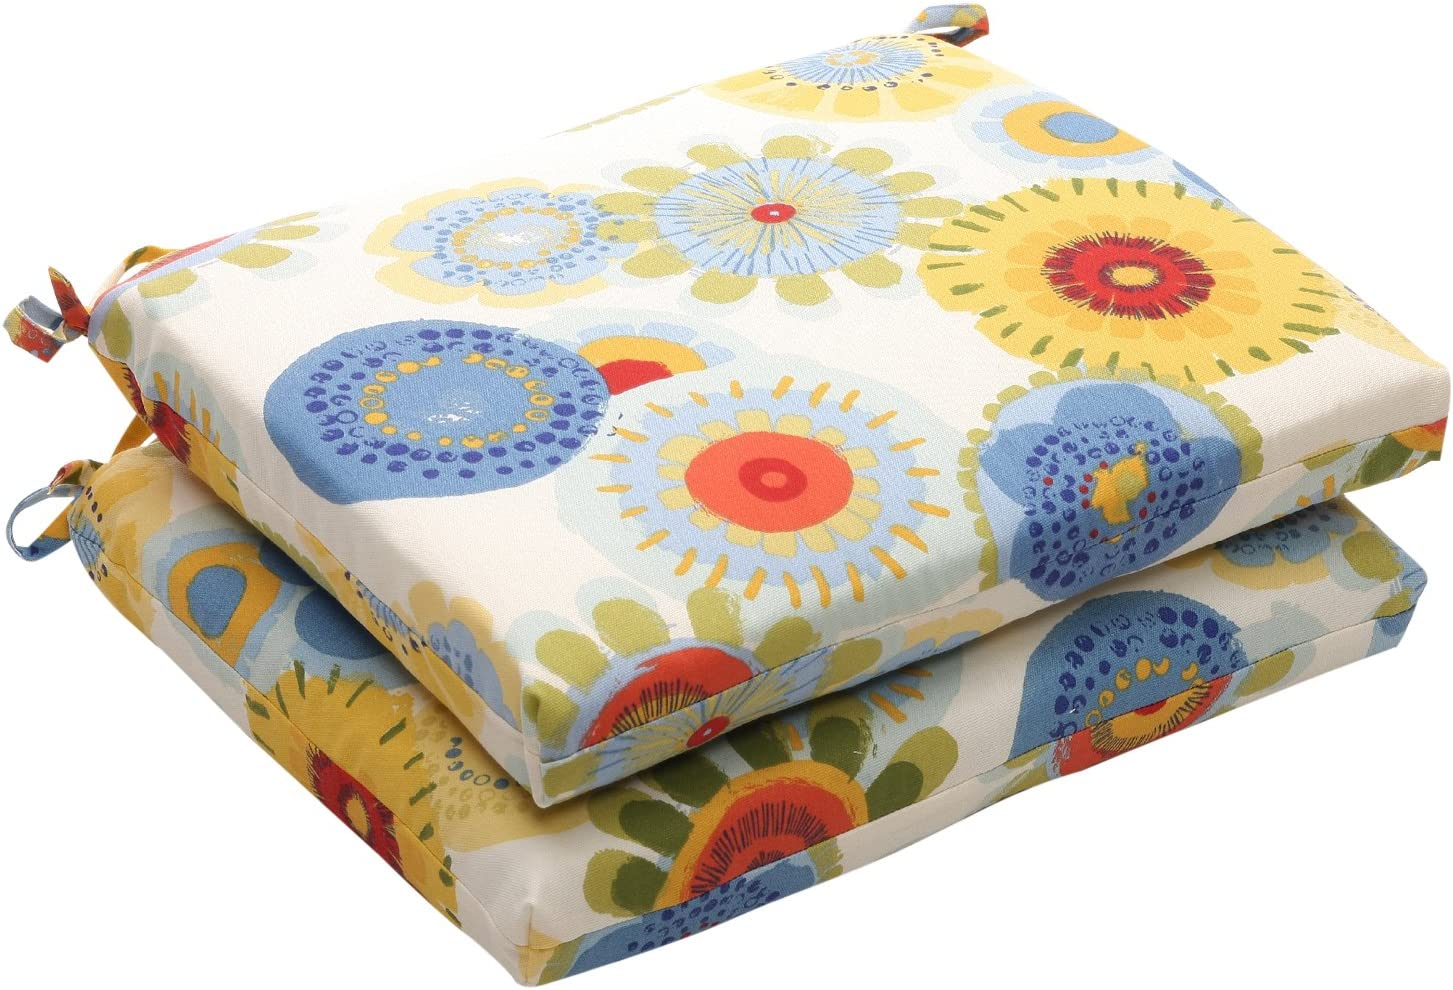 Pillow Perfect Indoor Outdoor Floral Square Seat Cushion, 18.5 in. L X 16 in. W X 3 in. D, Multicolored